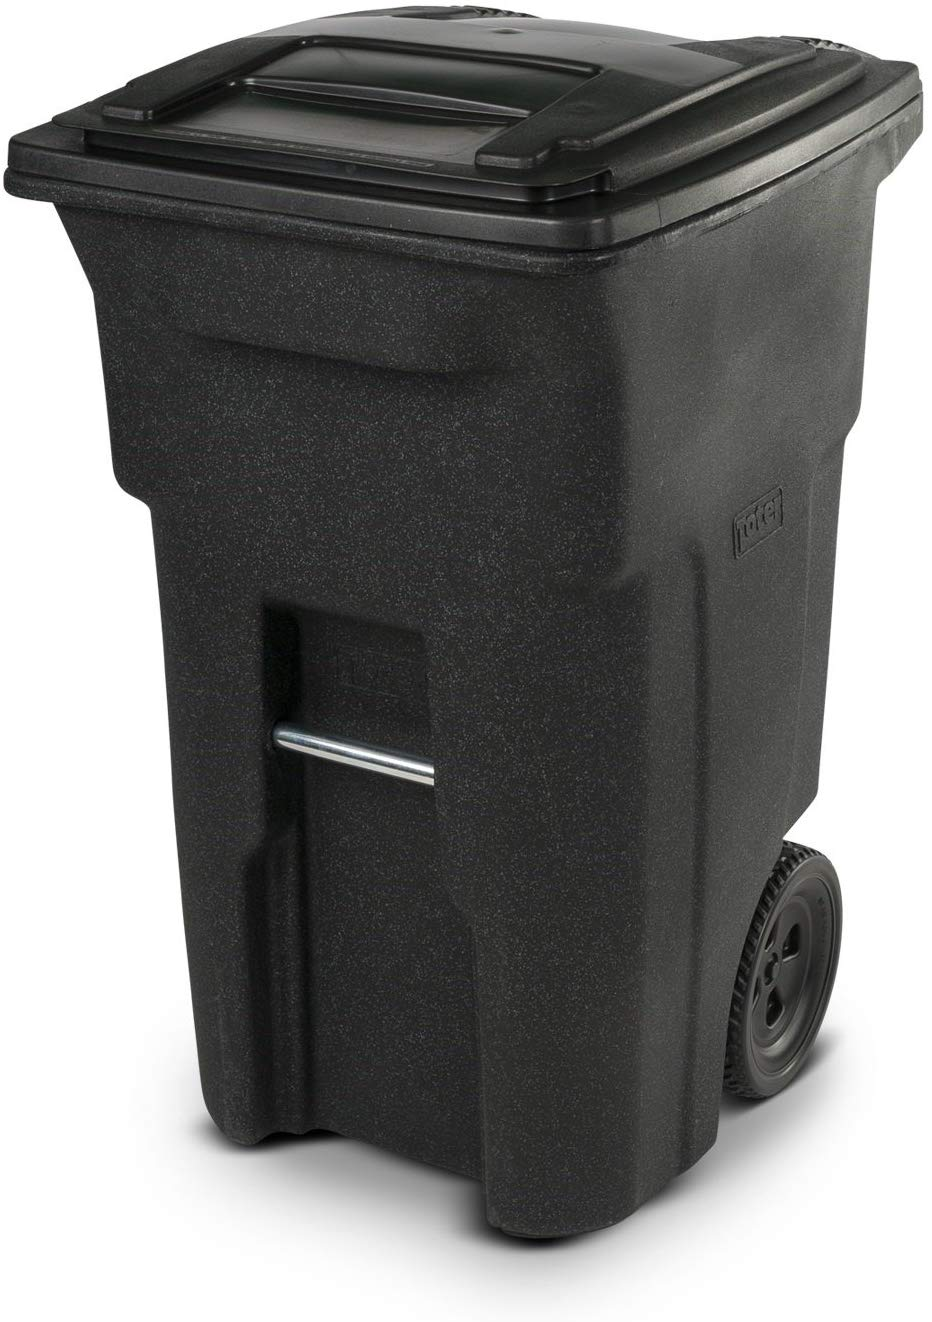 Outdoor 33 Suncast Outdoor Trash Can, 33 Gallon